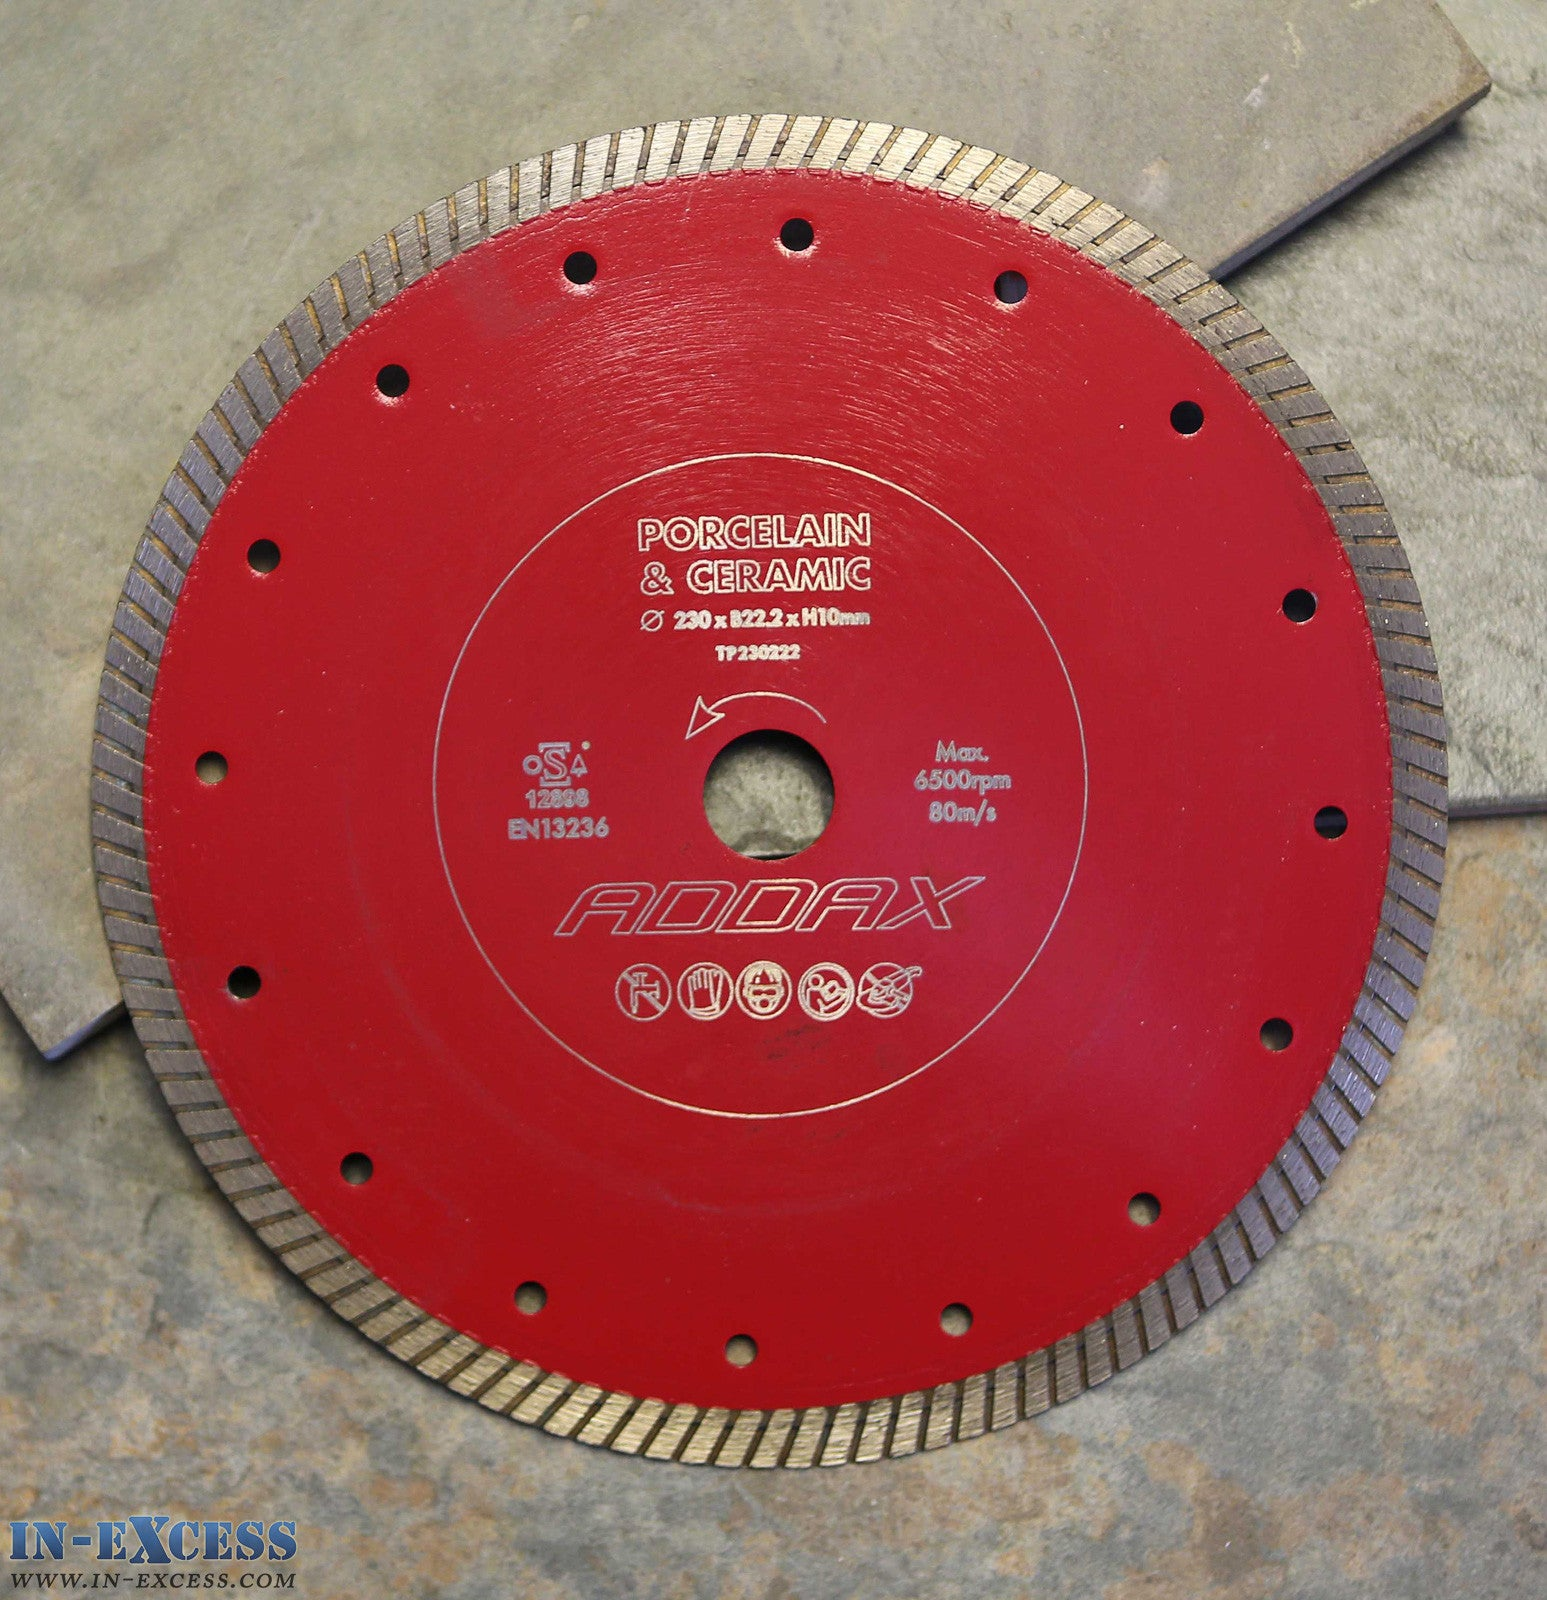 Saws cutting discs blades in excess direct addax timco porcelainceramic tile cutting saw blade 230 x 222 x 1mm keyboard keysfo Images